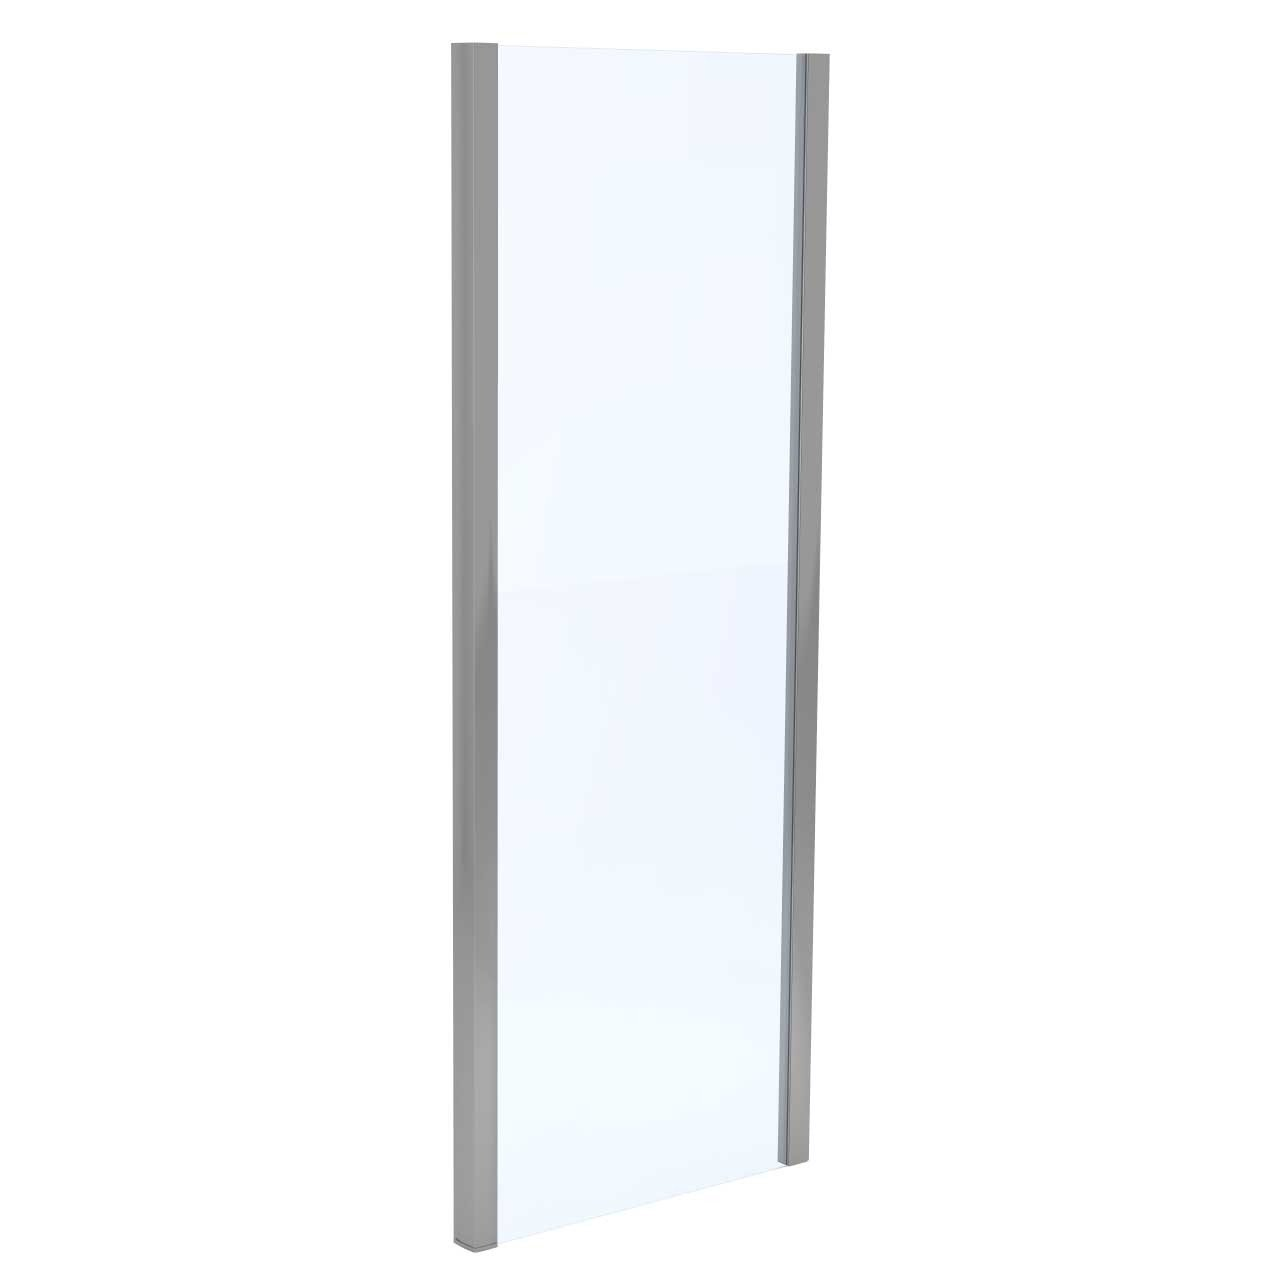 Series 8 900mm x 700mm Hinged Door Shower Enclosure